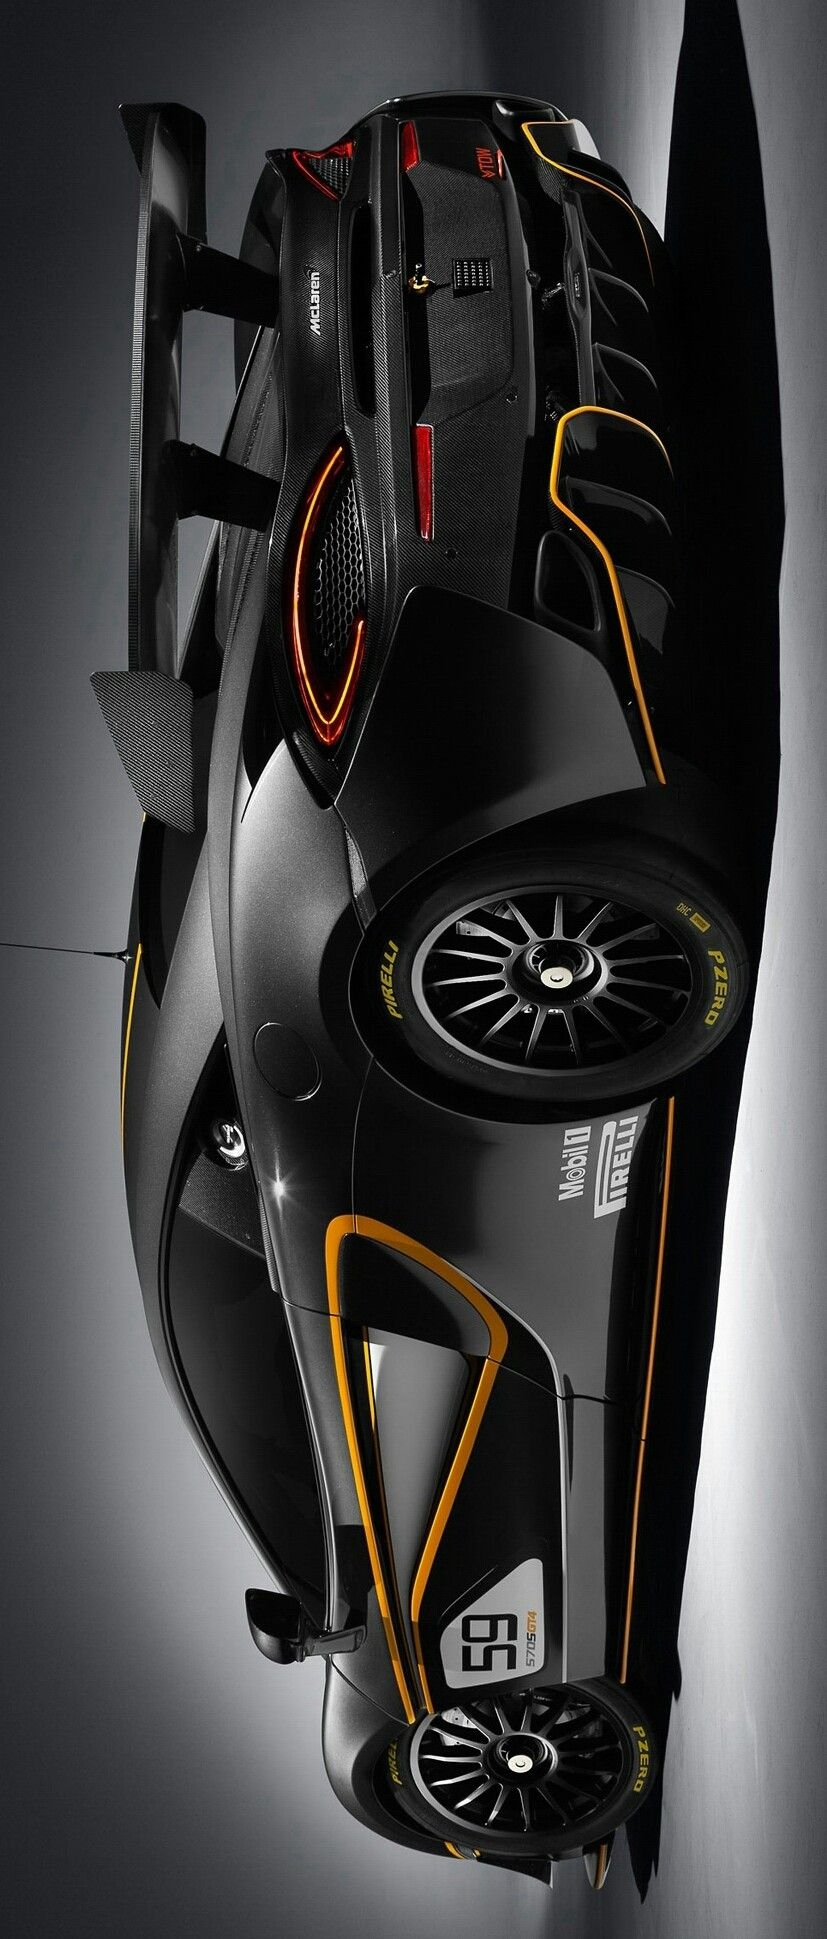 2016 McLaren 570S GT4 by Levon Coches deportivos, Coches